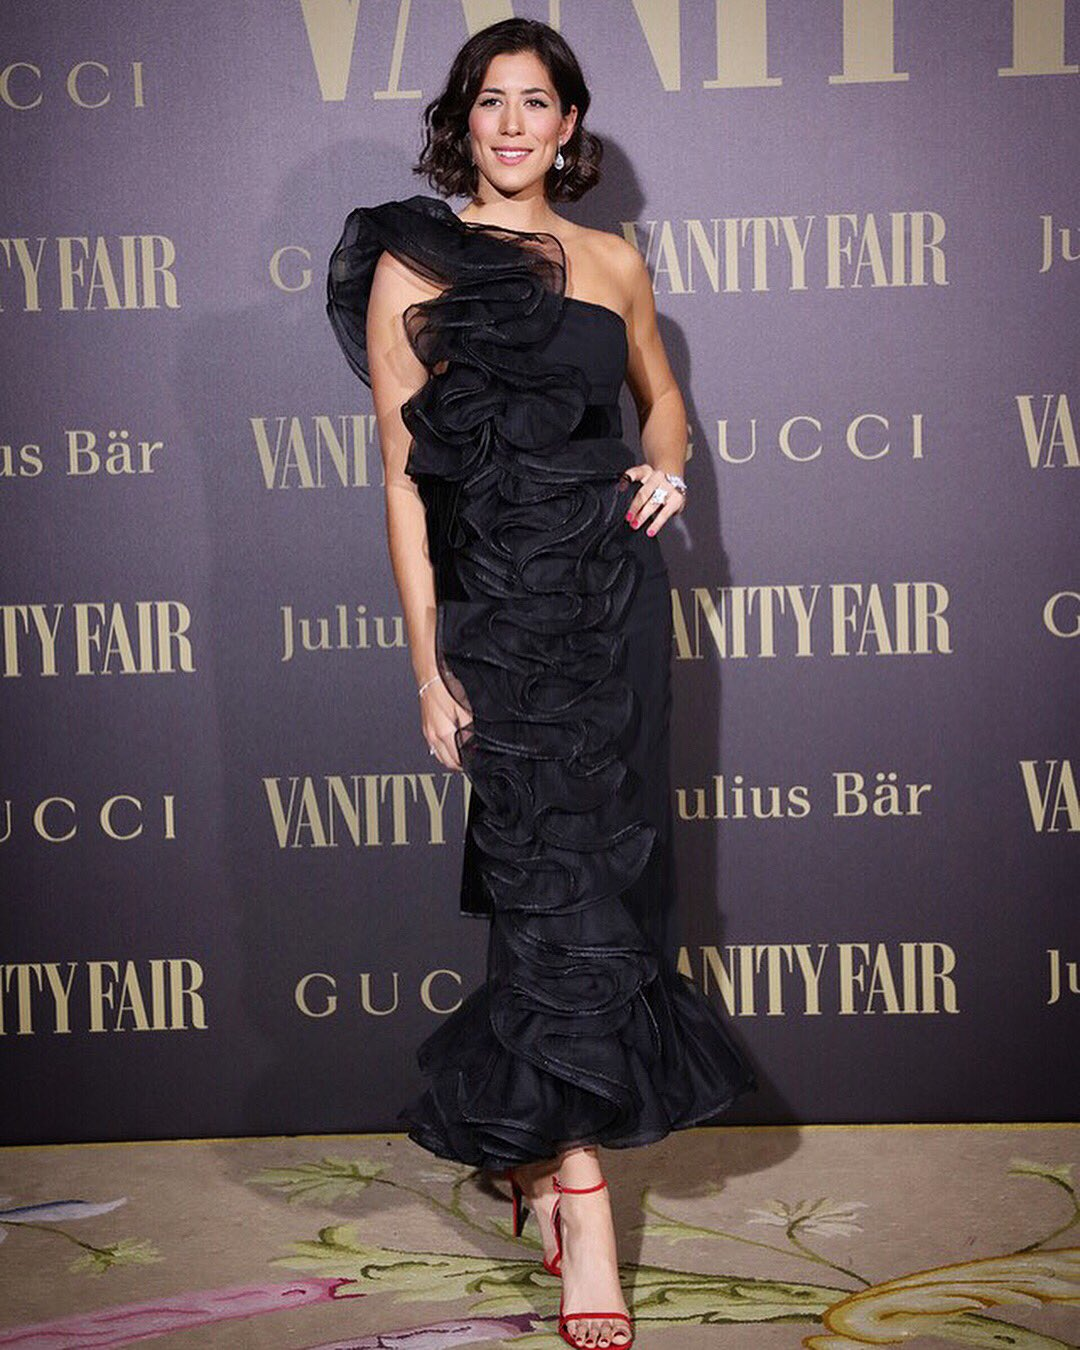 BEAUTIFUL @VanityFairSpain gala!! PRECIOSA gala de @VanityFairSpain #Gucci #JuliusBaer #Rolex #VF �������� https://t.co/kAMEJW7akB